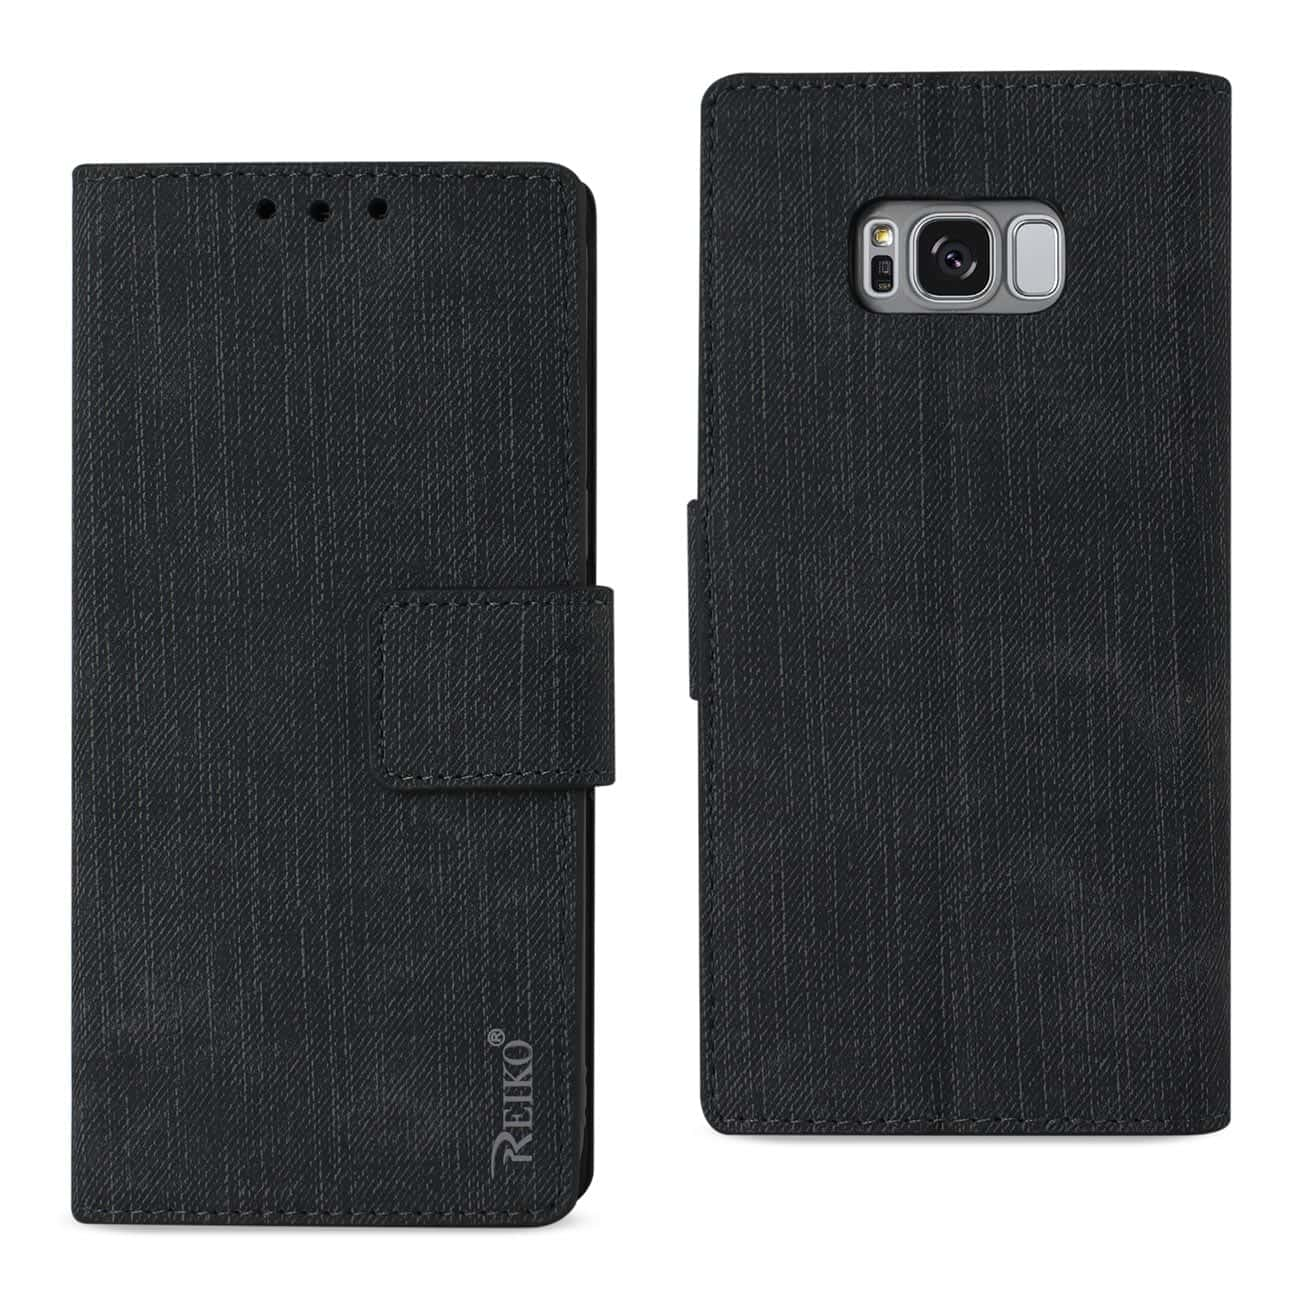 SAMSUNG S8 EDGE/ S8 PLUS DENIM WALLET CASE WITH GUMMY INNER SHELL AND KICKSTAND FUNCTION IN BLACK